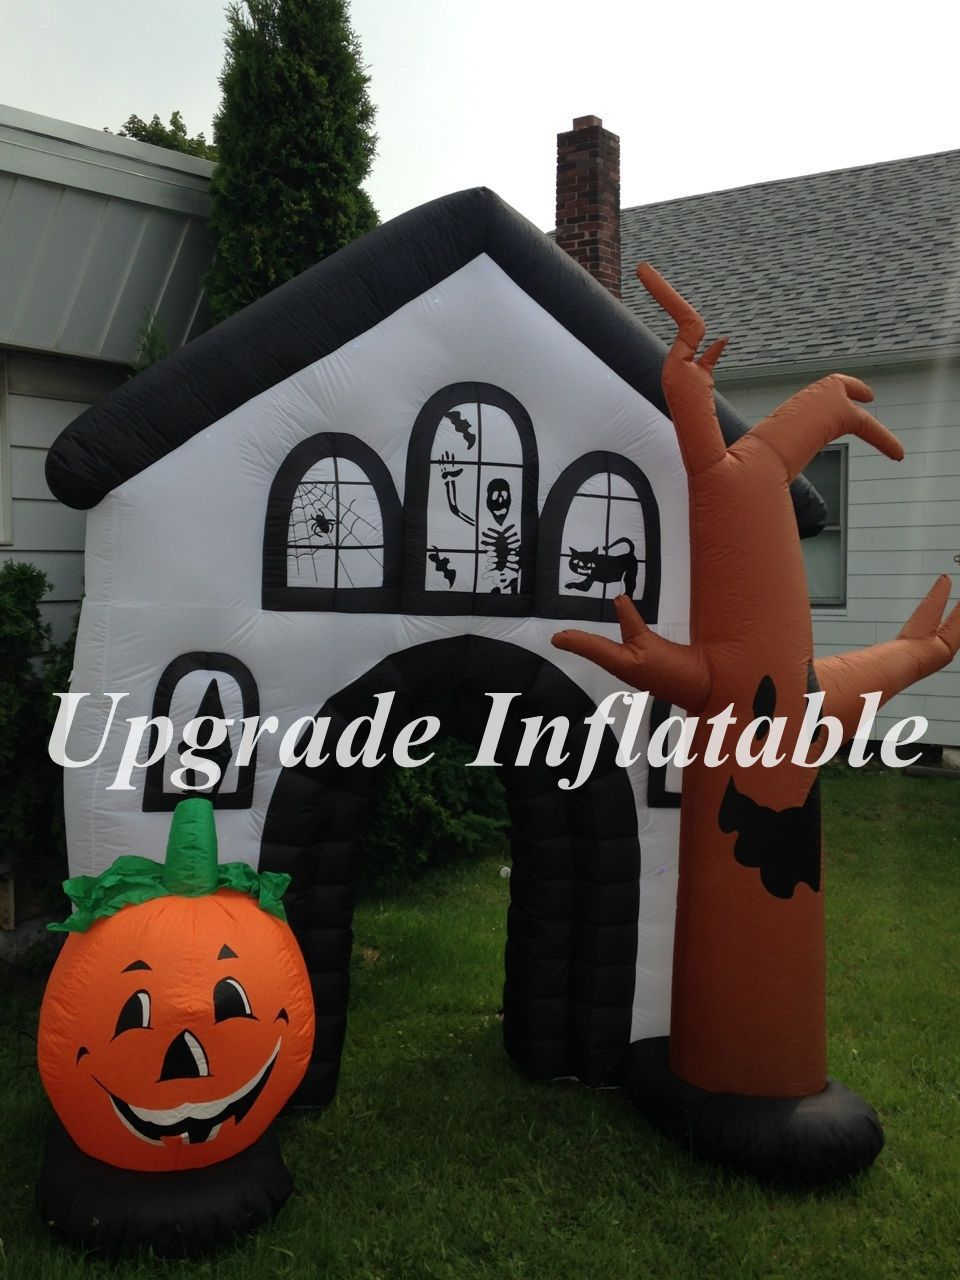 Outdoor inflatable halloween decorations - Horrible Haunted House Entrance Inflatable Outdoor Halloween Decorations China Mainland Popular